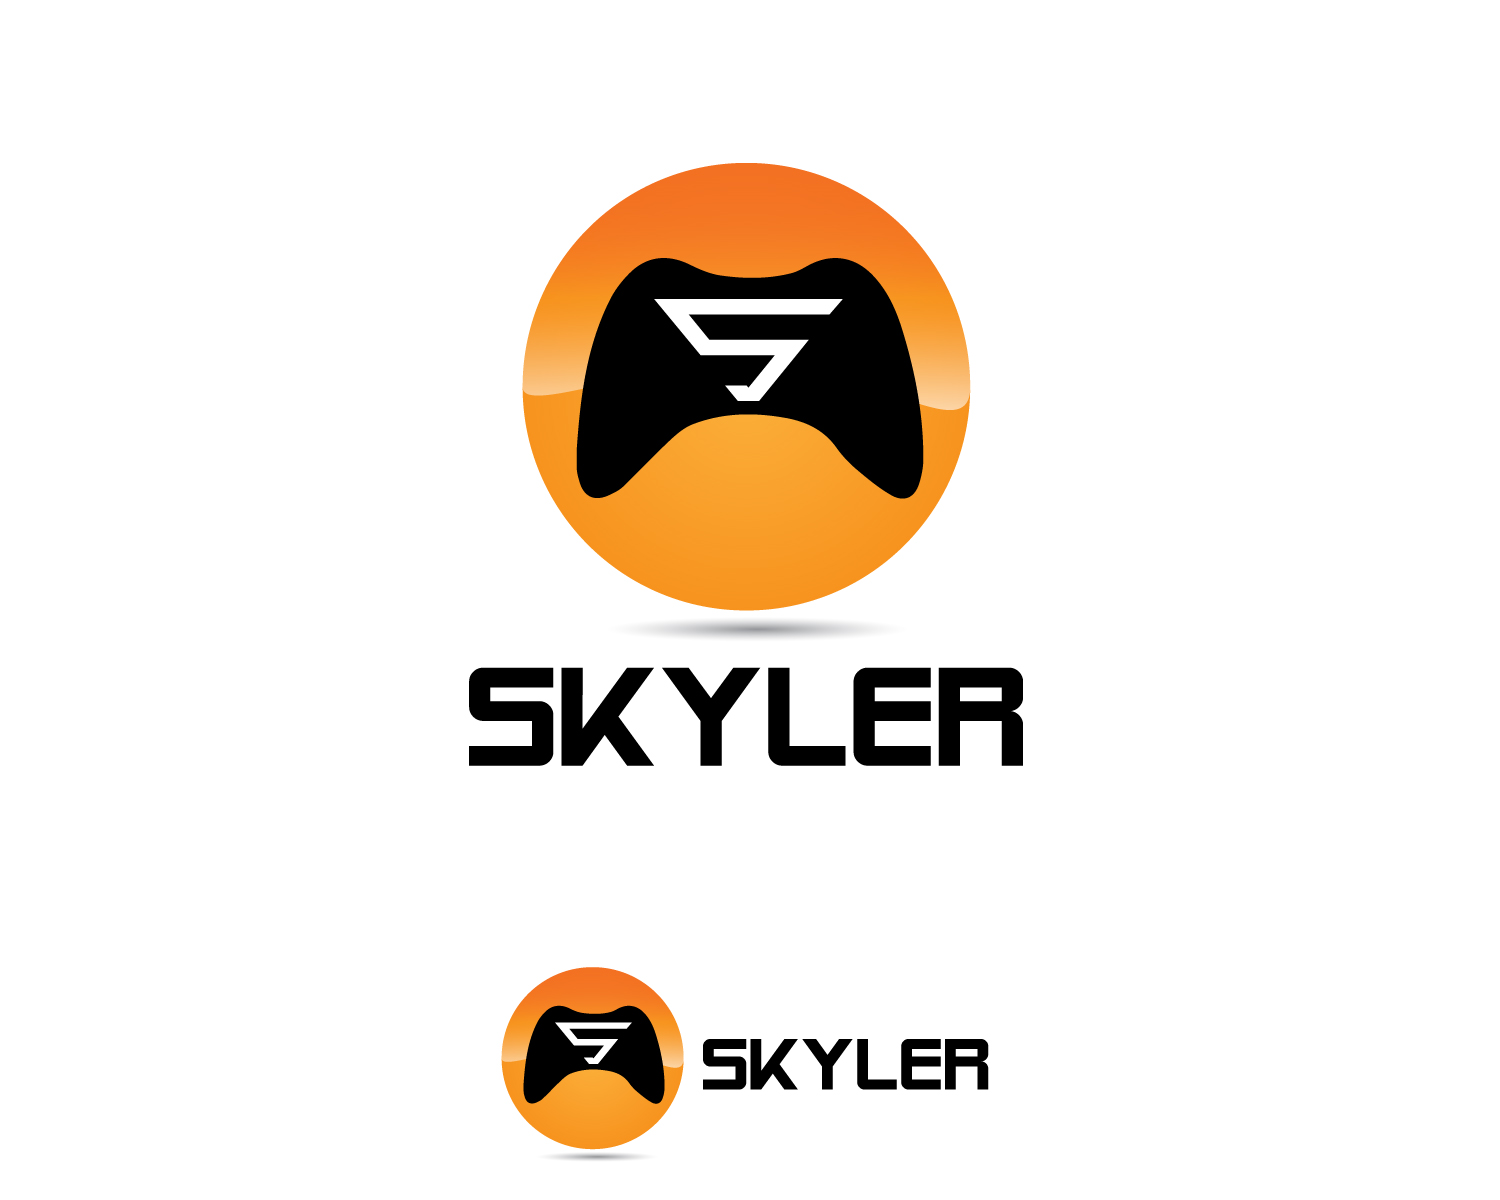 Logo Design by Jagdeep Singh - Entry No. 28 in the Logo Design Contest Artistic Logo Design for Skyler.Asia.